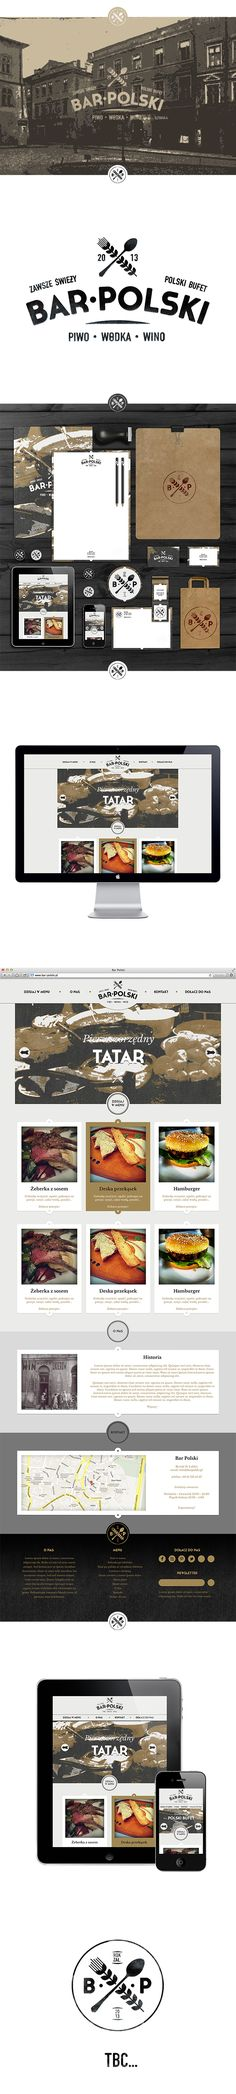 Restaurant branding - print and web design, good mix of retro and modern - love the black and white photography Corporate Design, Brand Identity Design, Graphic Design Branding, Typography Design, Packaging Design, Logo Design, Corporate Identity, Print Design, Food Branding